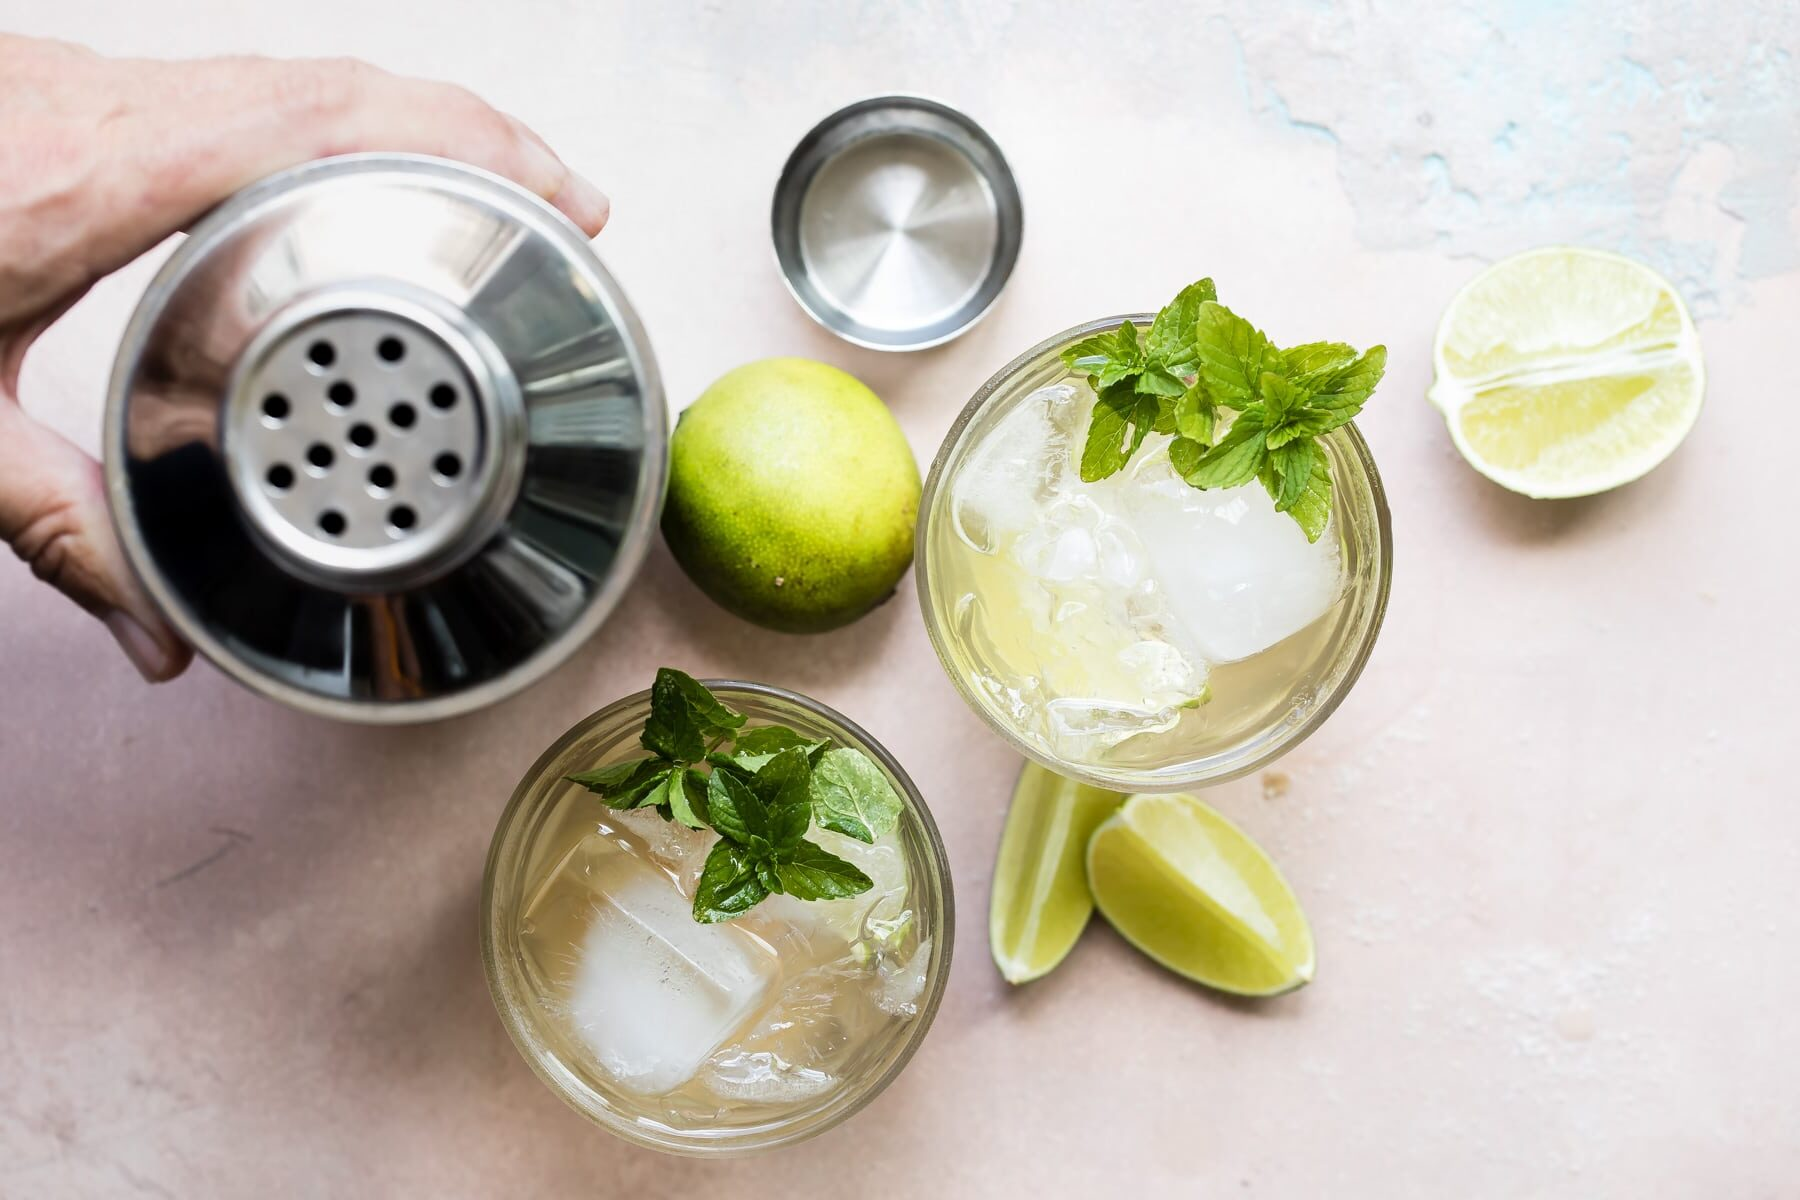 Two Moscow mules in clear glasses next to a cocktail shaker.